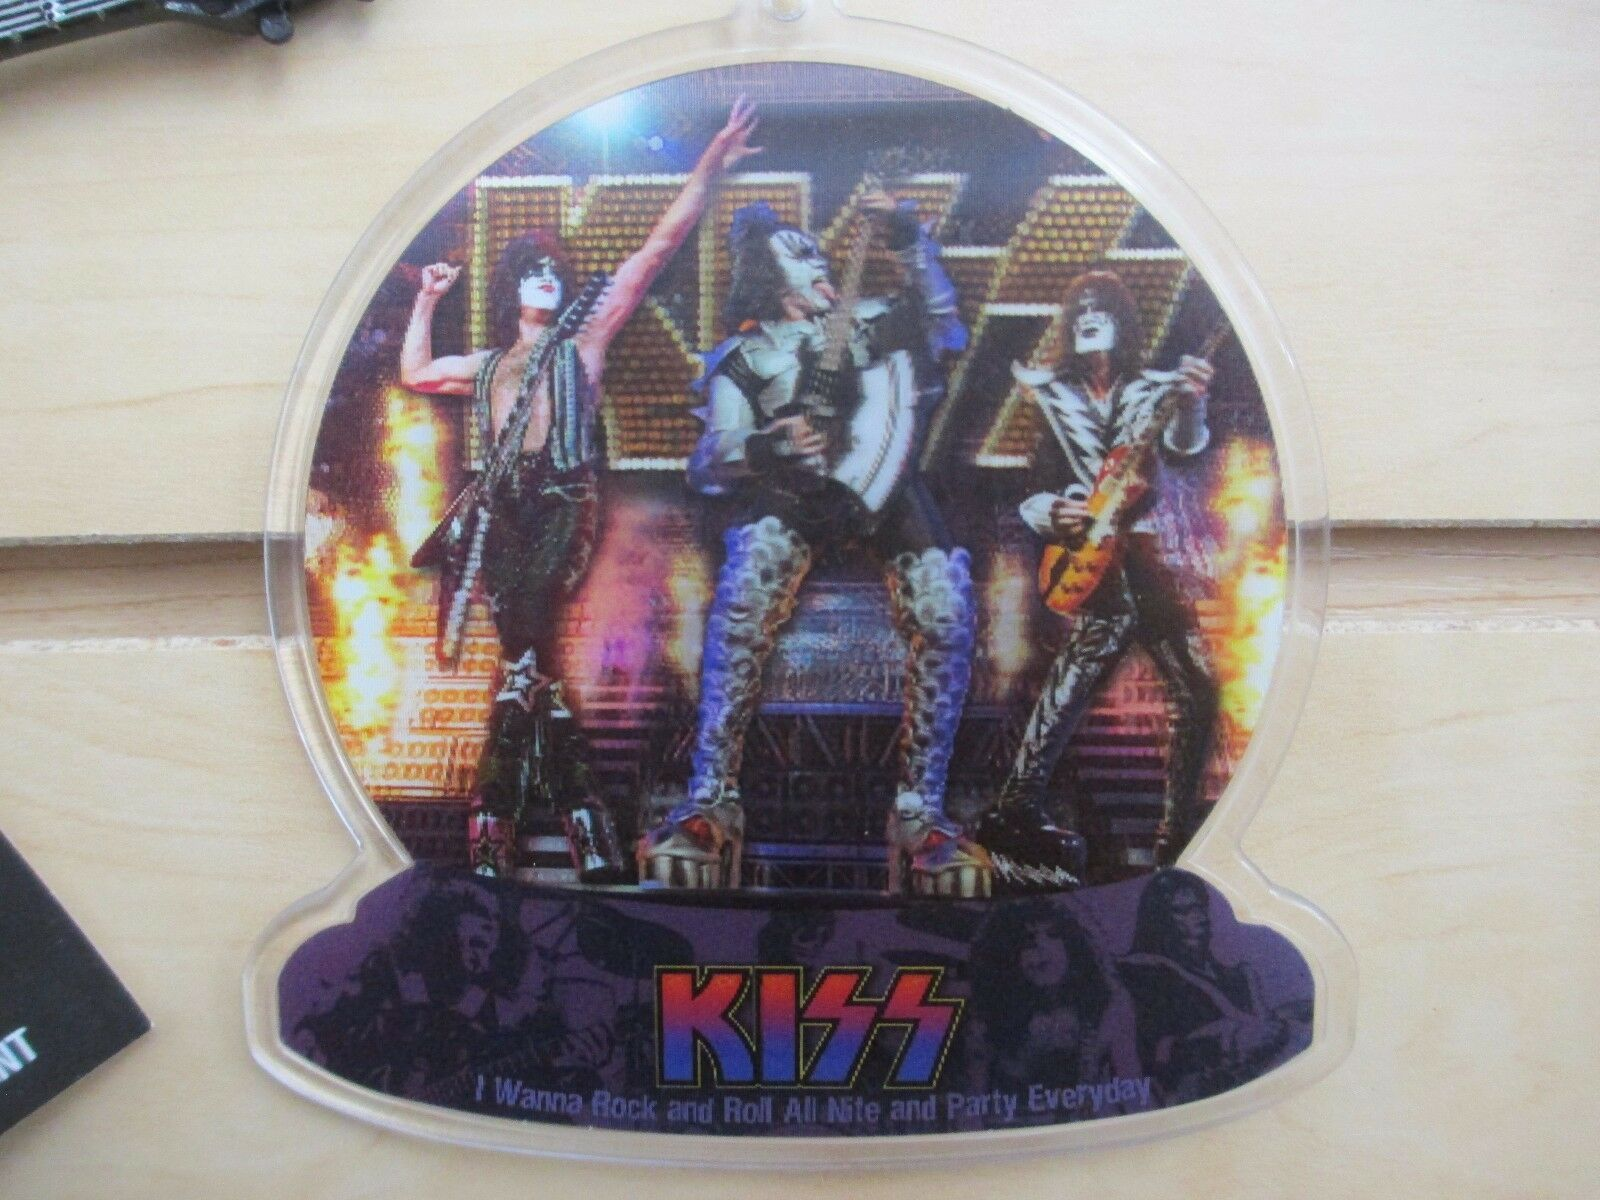 Set of 3 - KISS Ornaments - Demon & Star Child Guitars - New with Tags